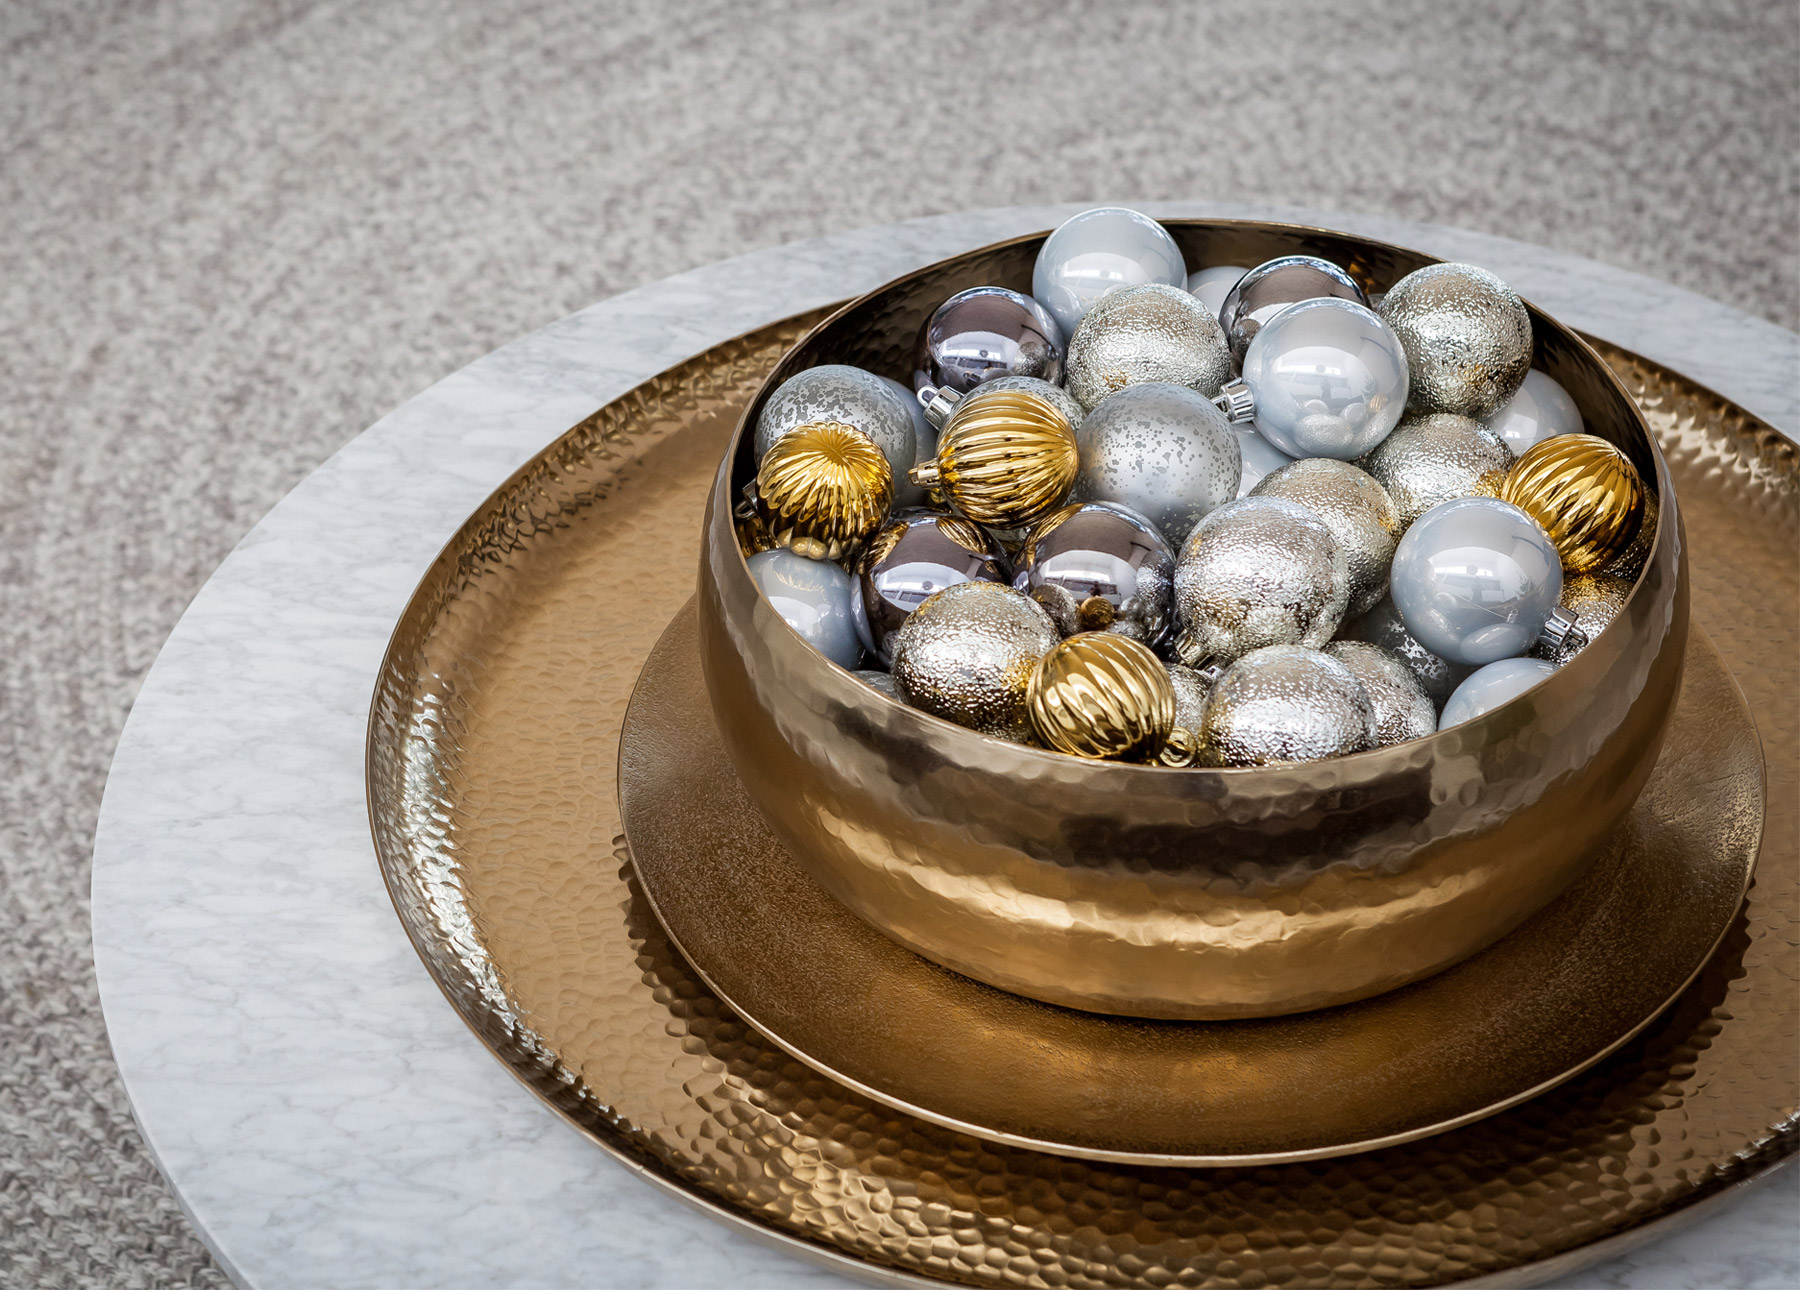 Holiday ornaments fill a shimmering metallic bowl.